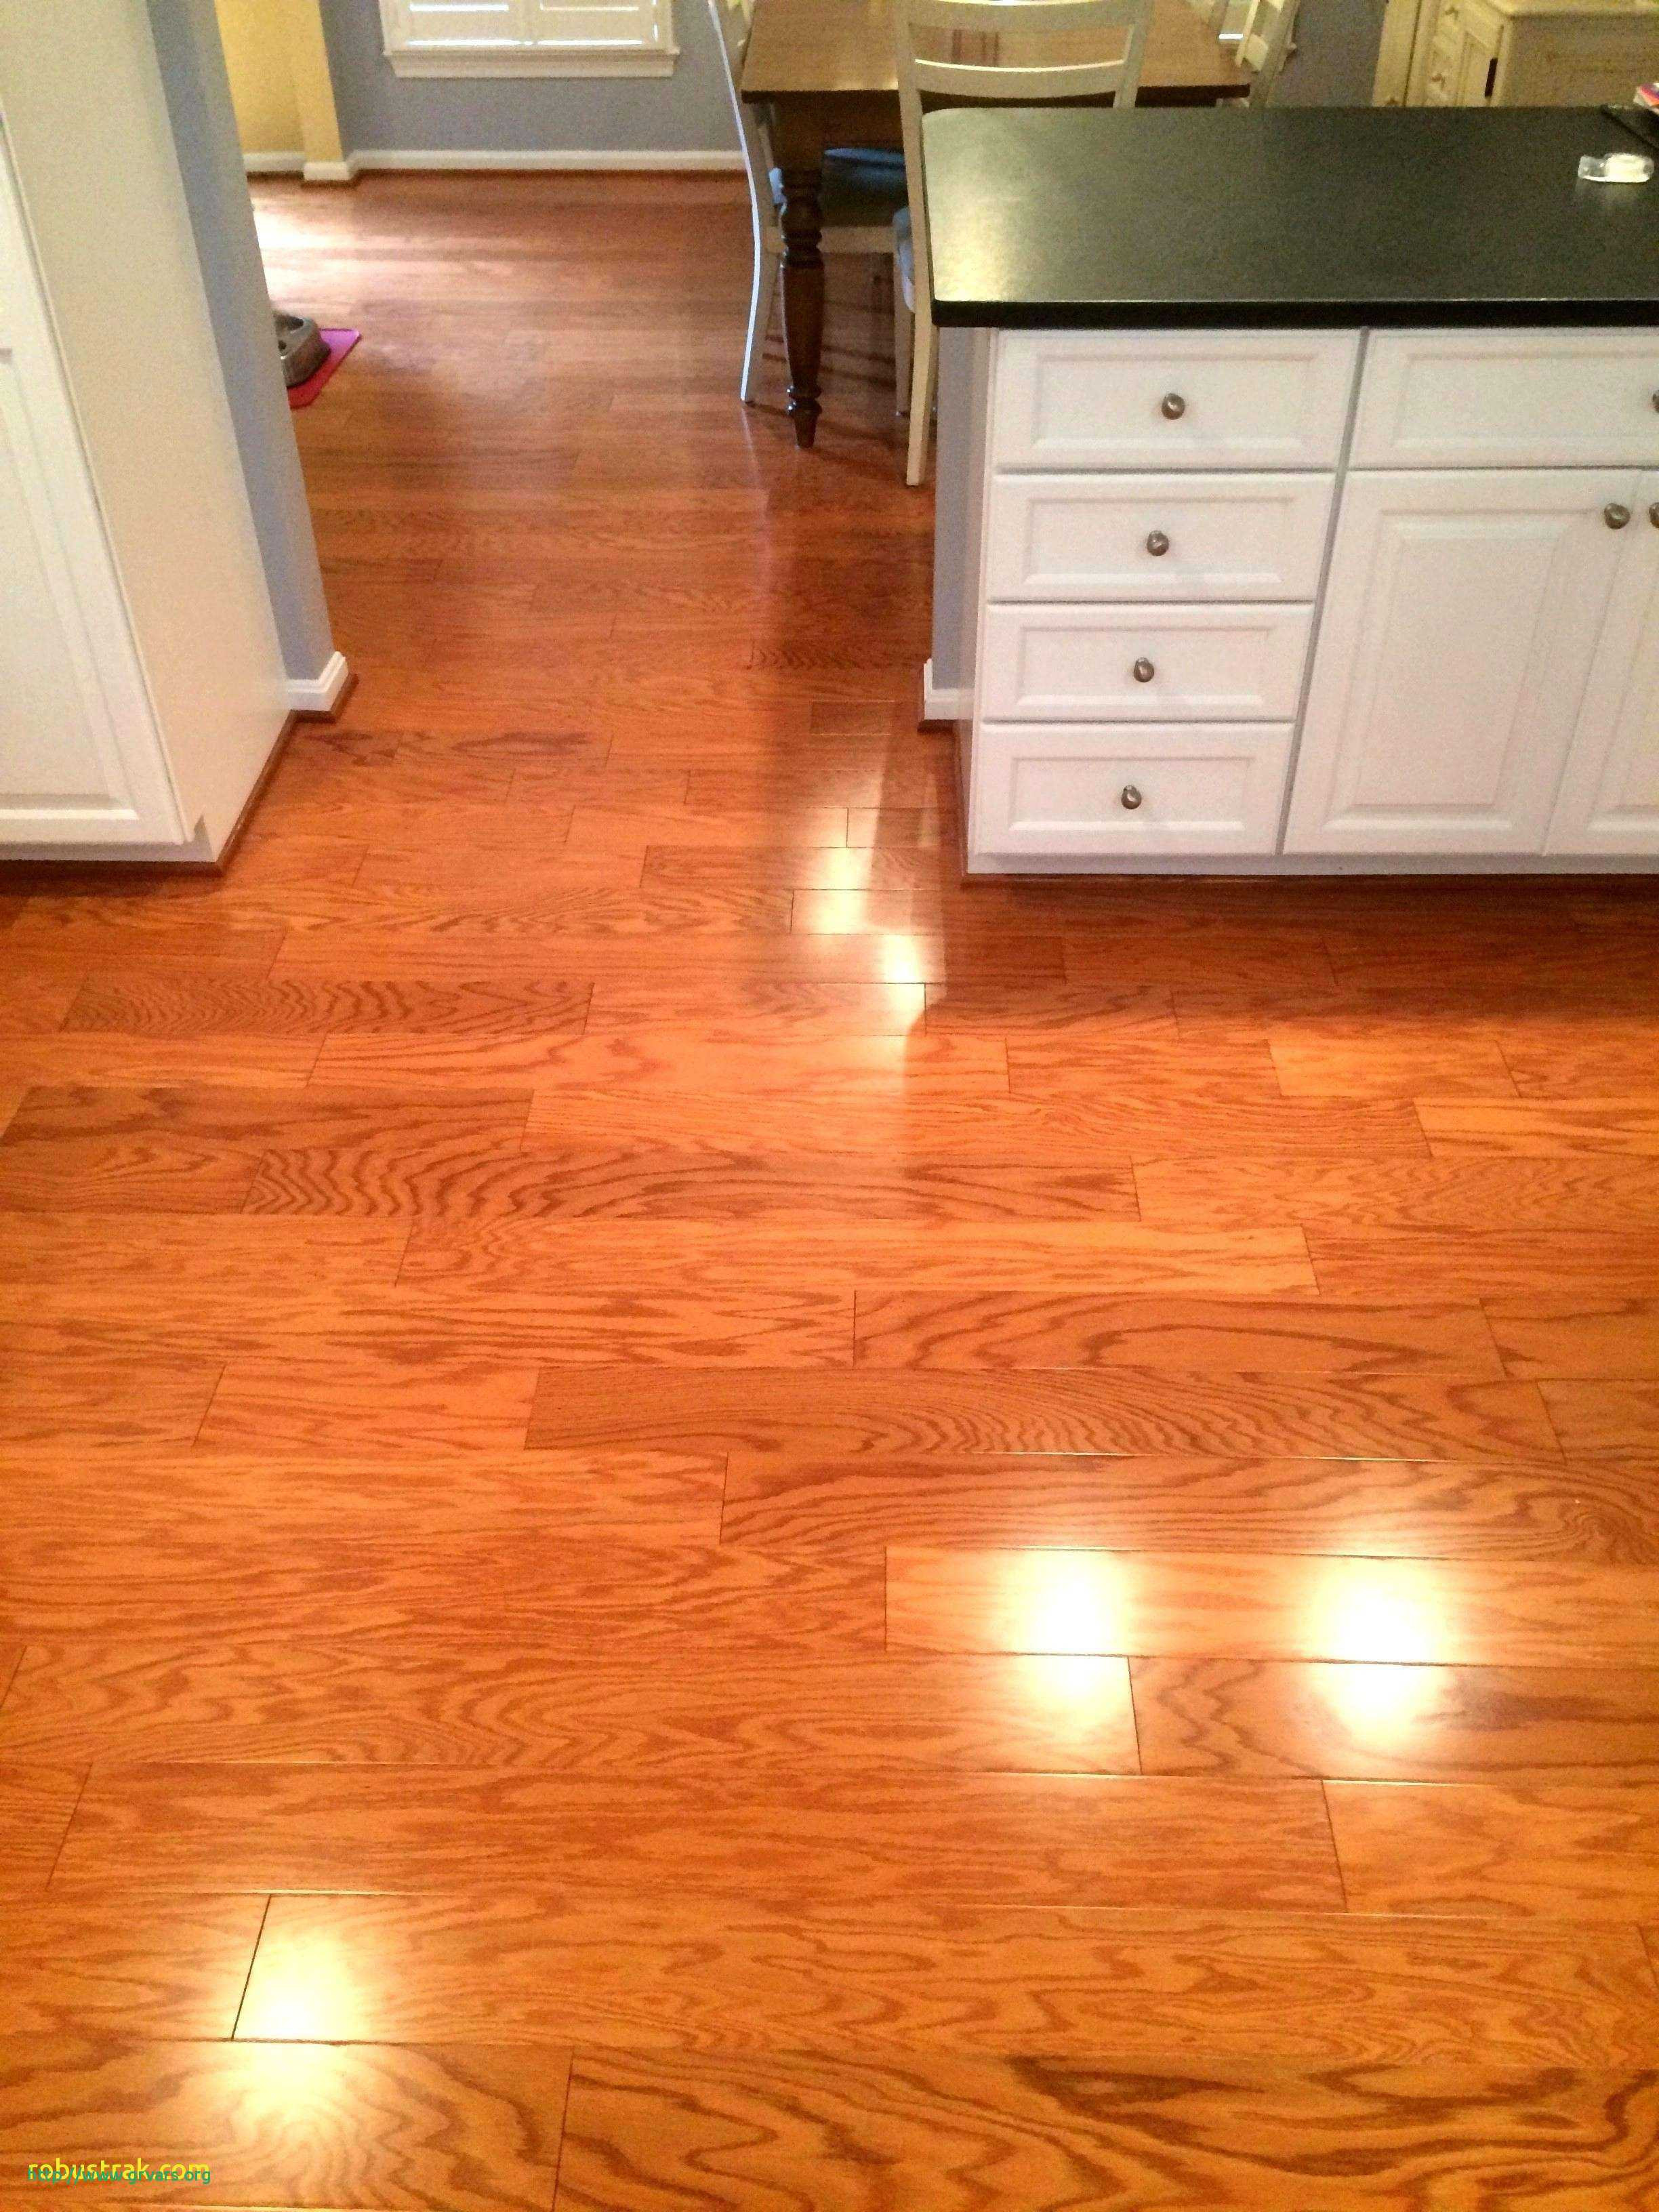 how do you clean prefinished hardwood floors of 23 frais how much is a hardwood floor ideas blog in hardwood floors in the kitchen fresh where to buy hardwood flooring inspirational 0d grace place barnegat